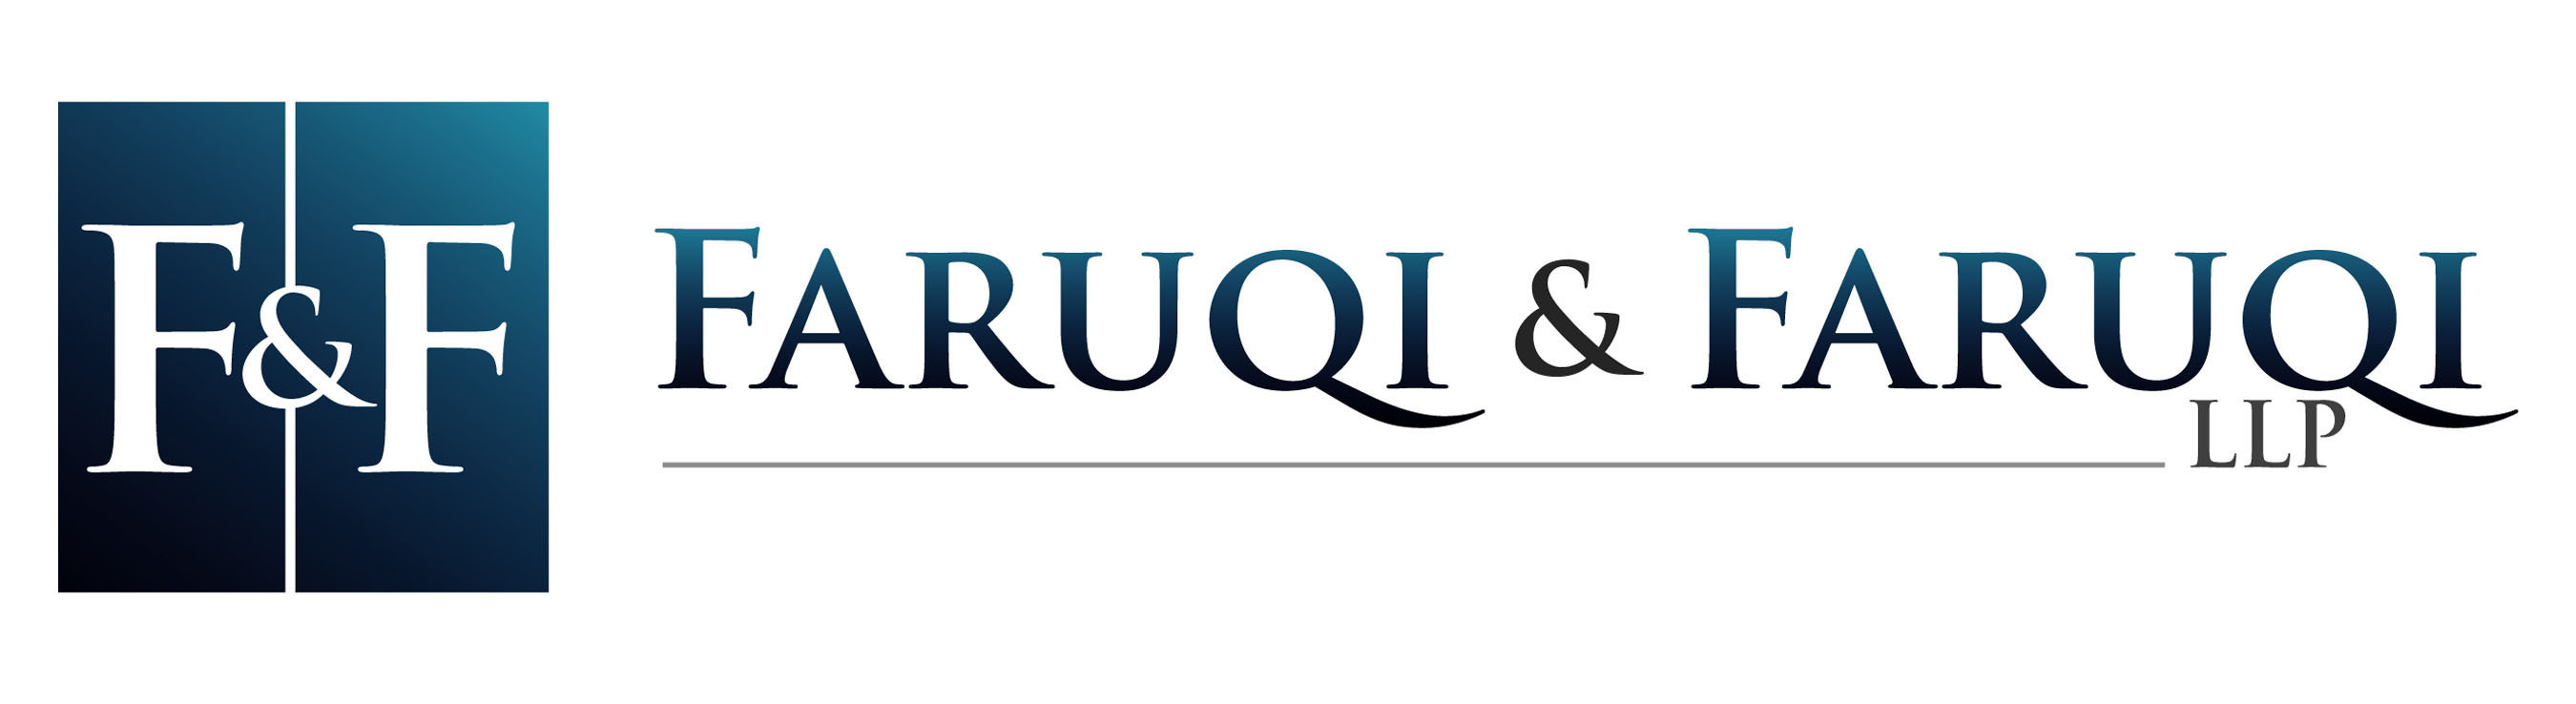 Faruqi & Faruqi, LLP, a leading national securities firm headquartered in New York City, is investigating the Board of Directors of Vivint Solar, Inc.